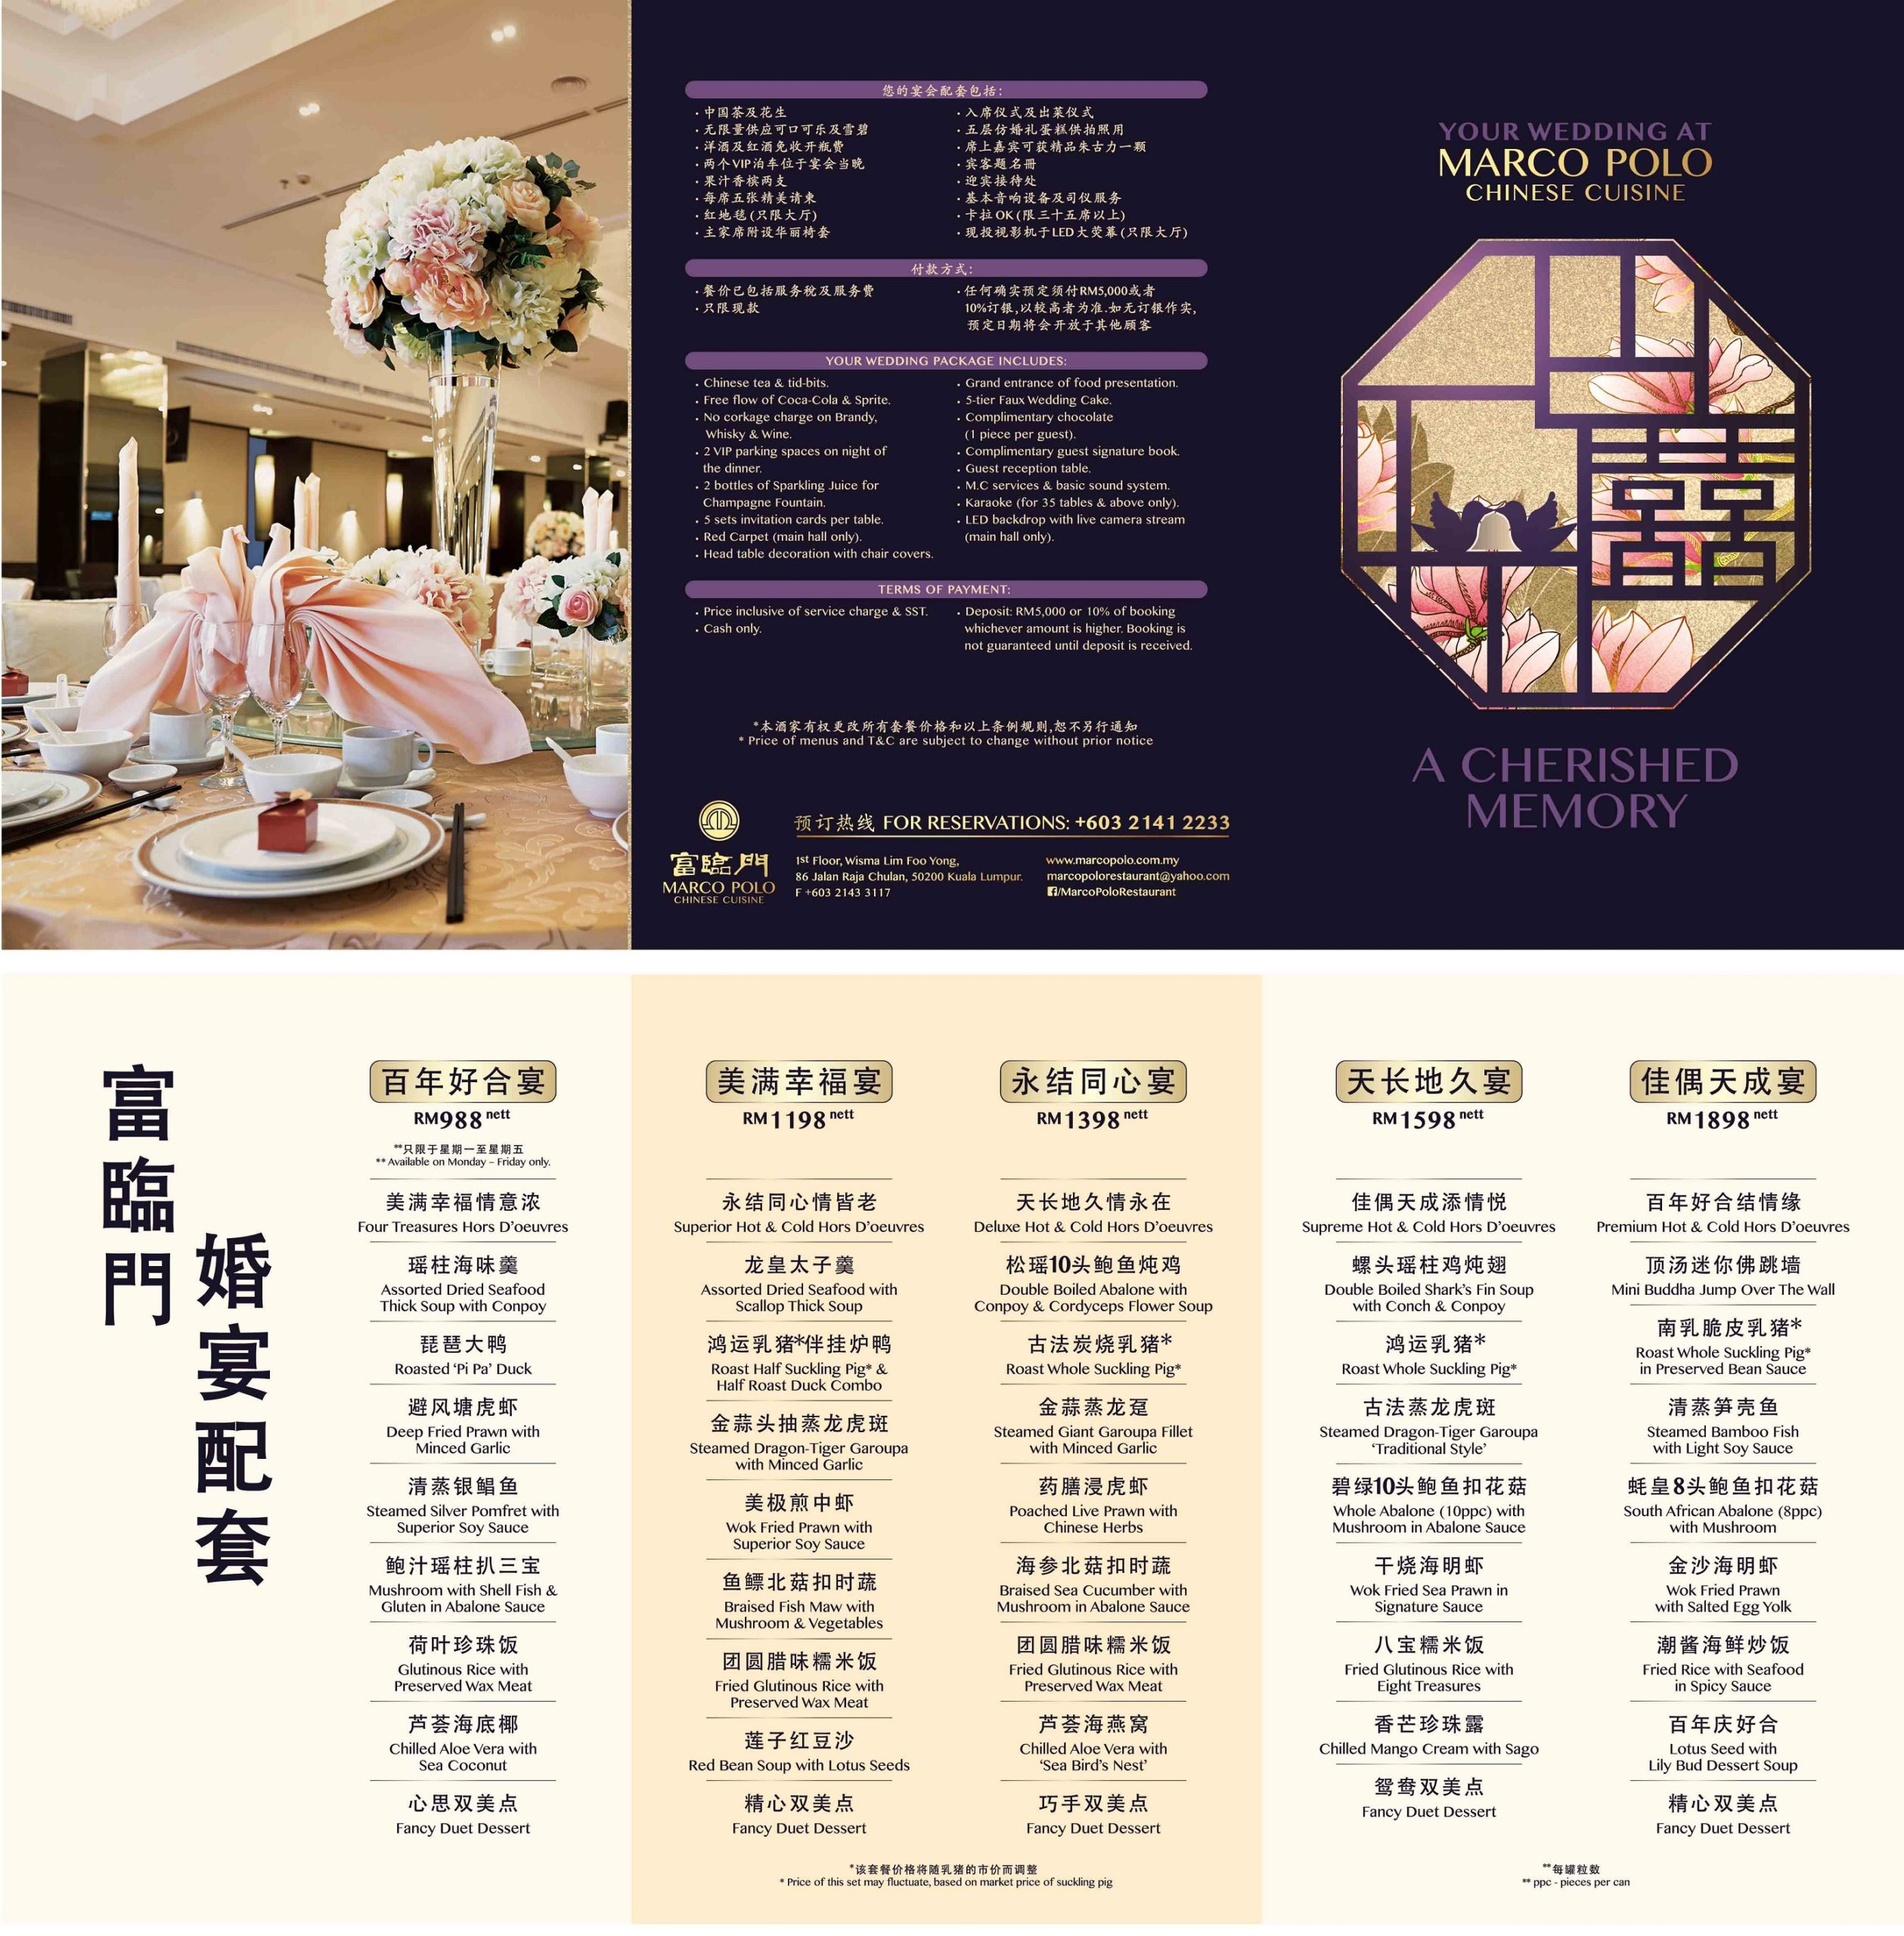 marco polo wedding package 2020 kl